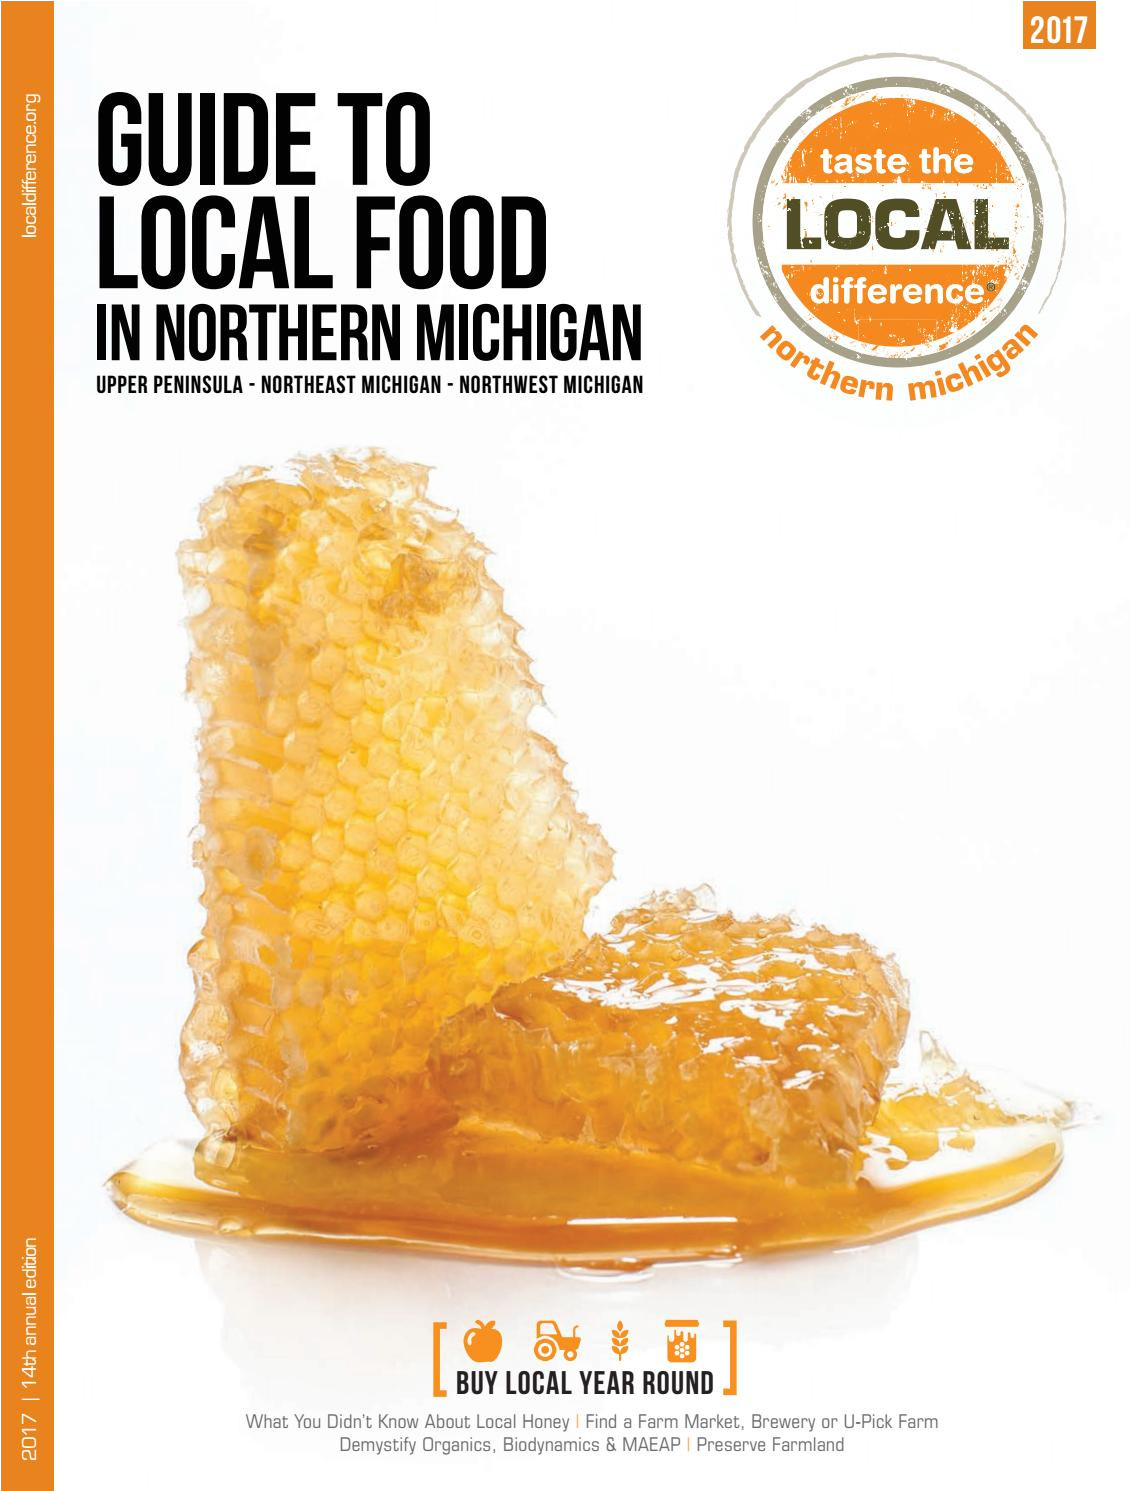 Toms Food Market Interlochen Taste the Local Difference 2017 by Mynorth issuu